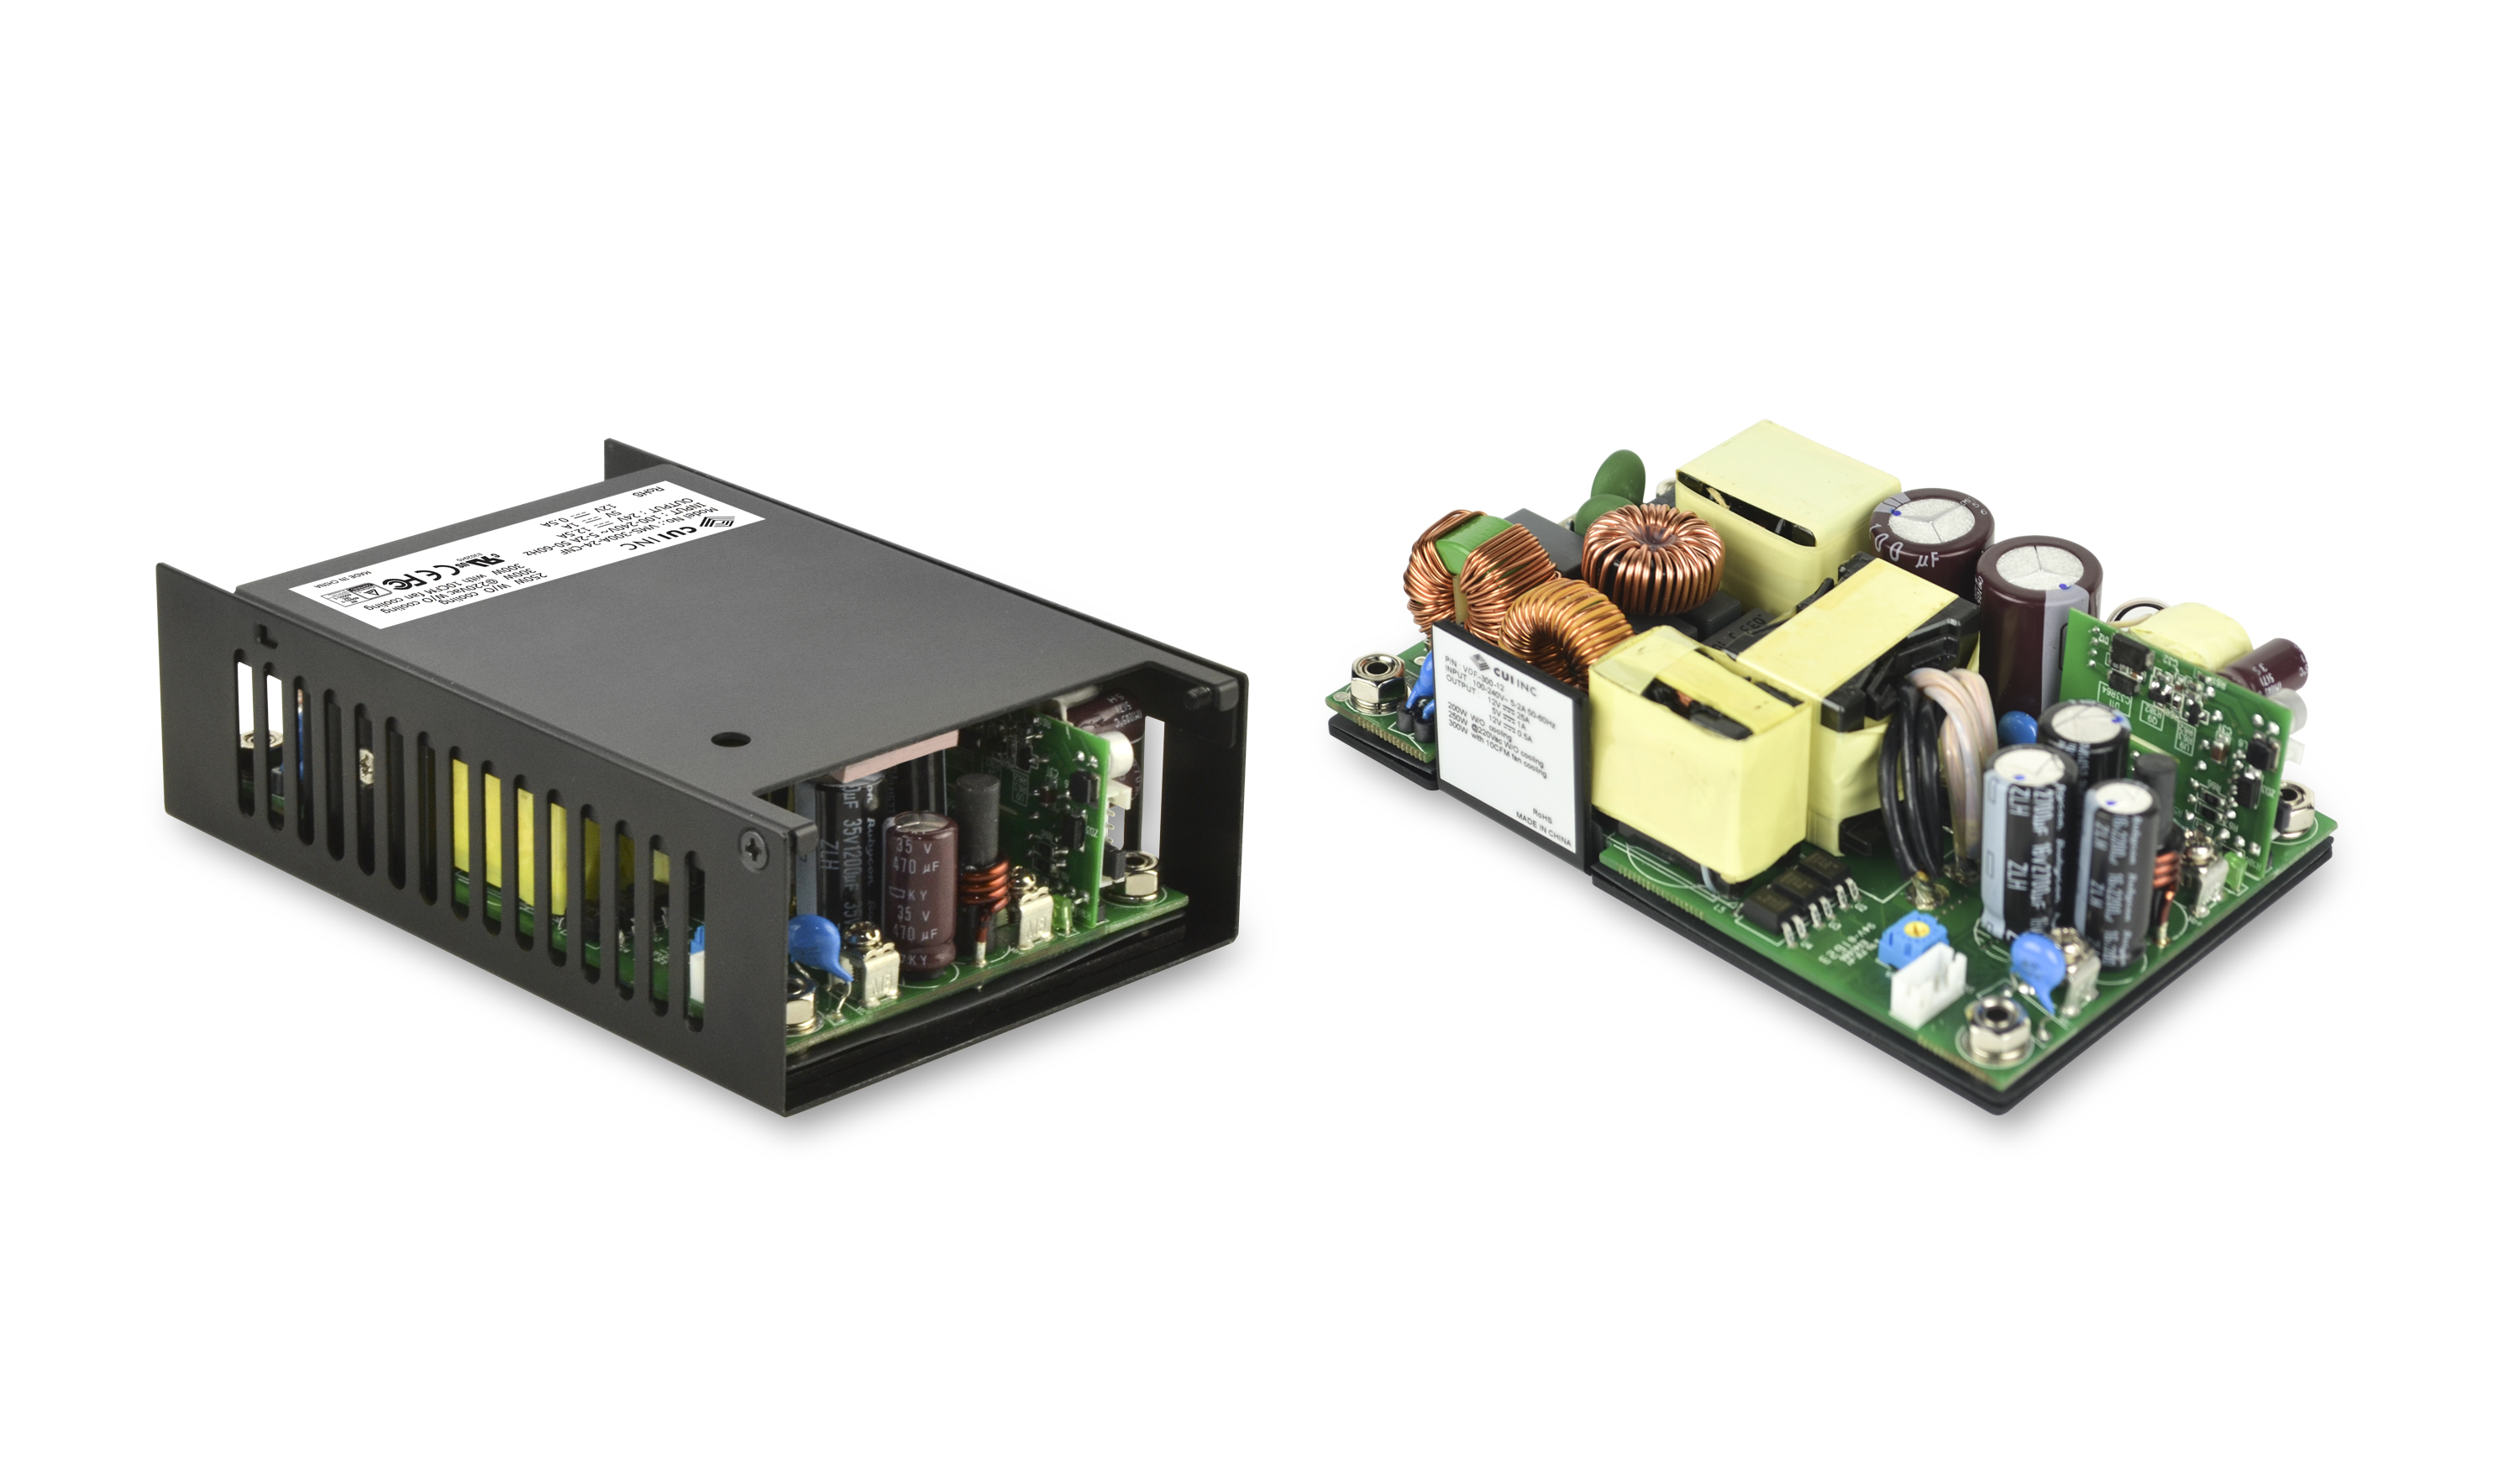 300 W Ac-Dc Power Supply Series Offers High Efficiency in a 3� x 5� Package